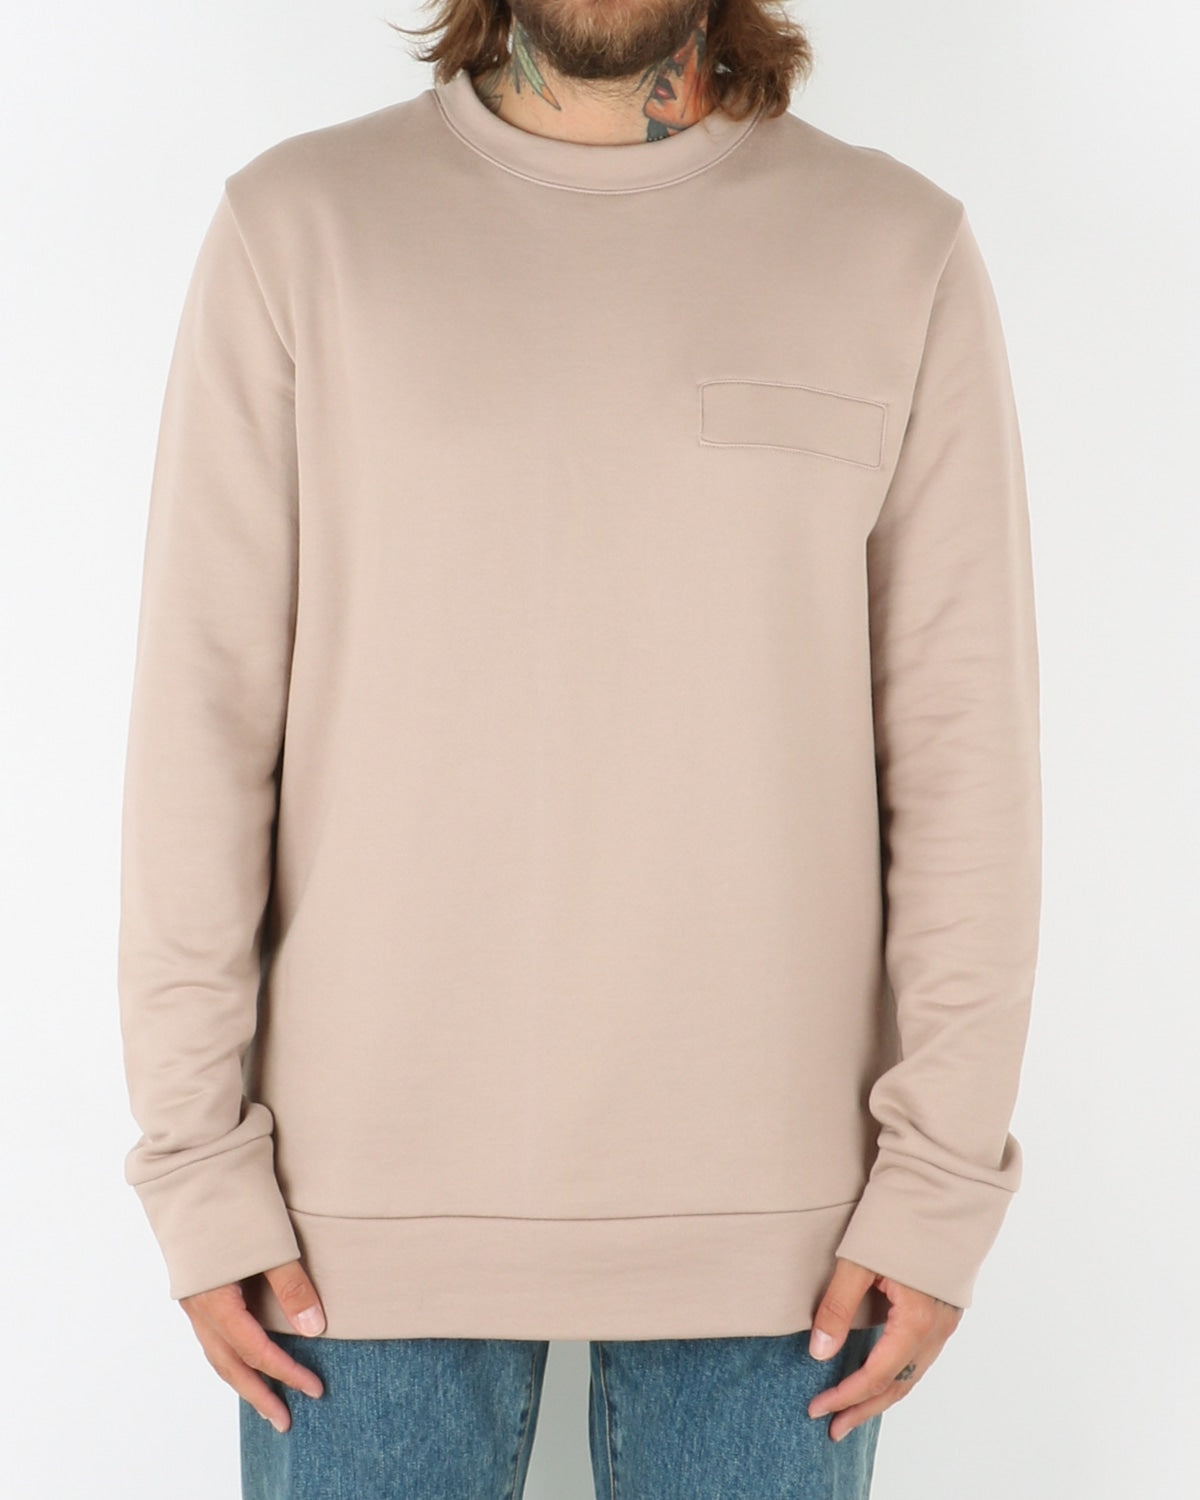 libertine libertine_east sweatshirt_nude_view_1_3